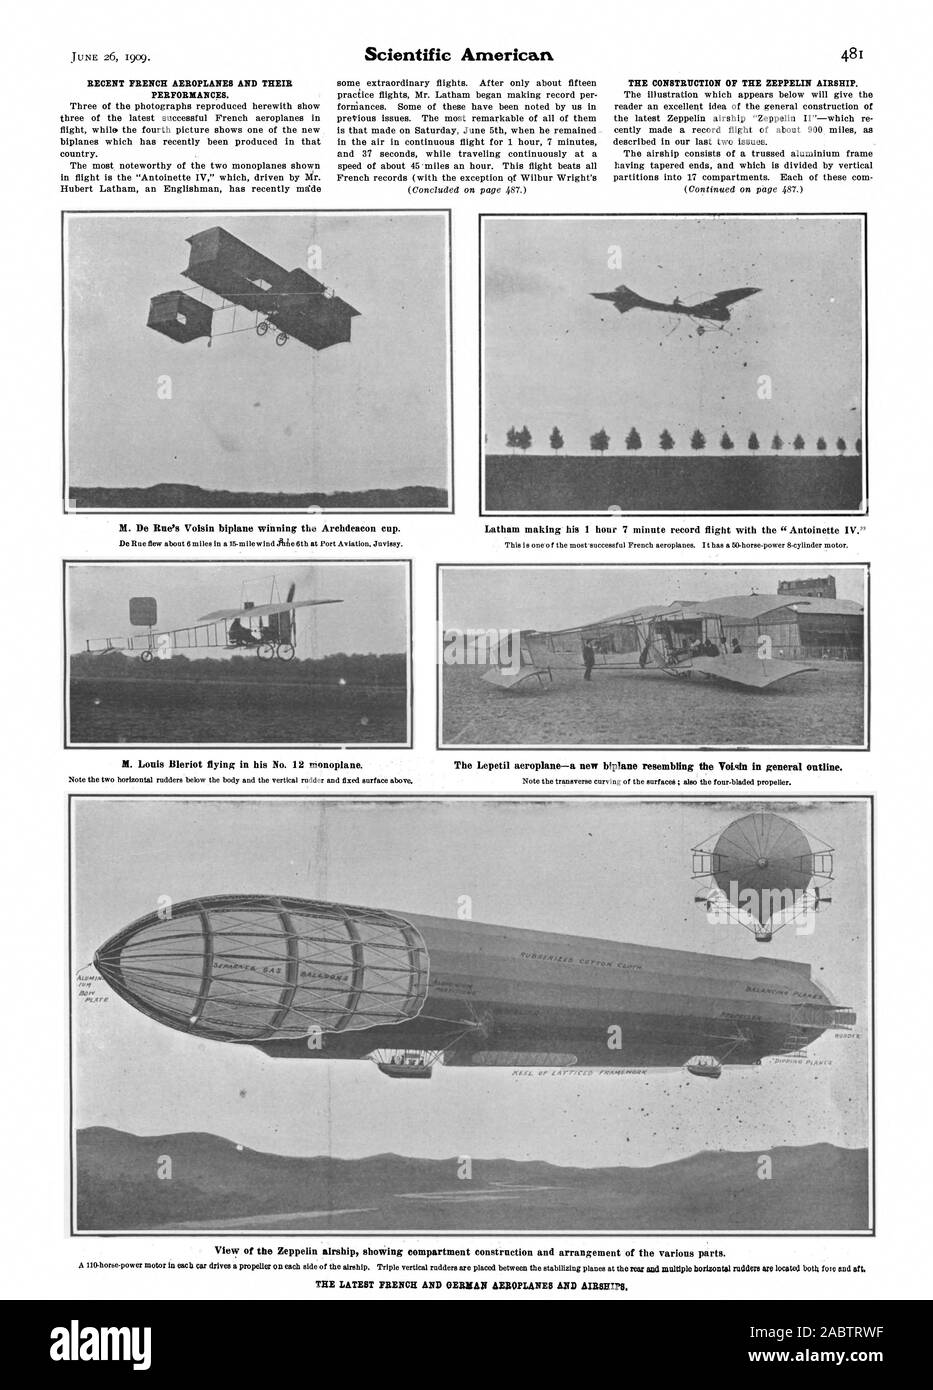 M. De Rue's Voisin biplane winning the Archdeacon cup. M. Louis Bleriot flying in his No. 12 monoplane. Latham making his 1 hour 7 minute record flight with the 'Antoinette IV.' The Lepetil aeroplane—a new biplane resembling the Votigin in general outline. View of the Zeppelin airship showing compartment construction and arrangement of the various parts. THE LATEST FRENCH AND GERMAN AEROPLANES AND AIRSHIPS., scientific american, -1909-06-26 Stock Photo